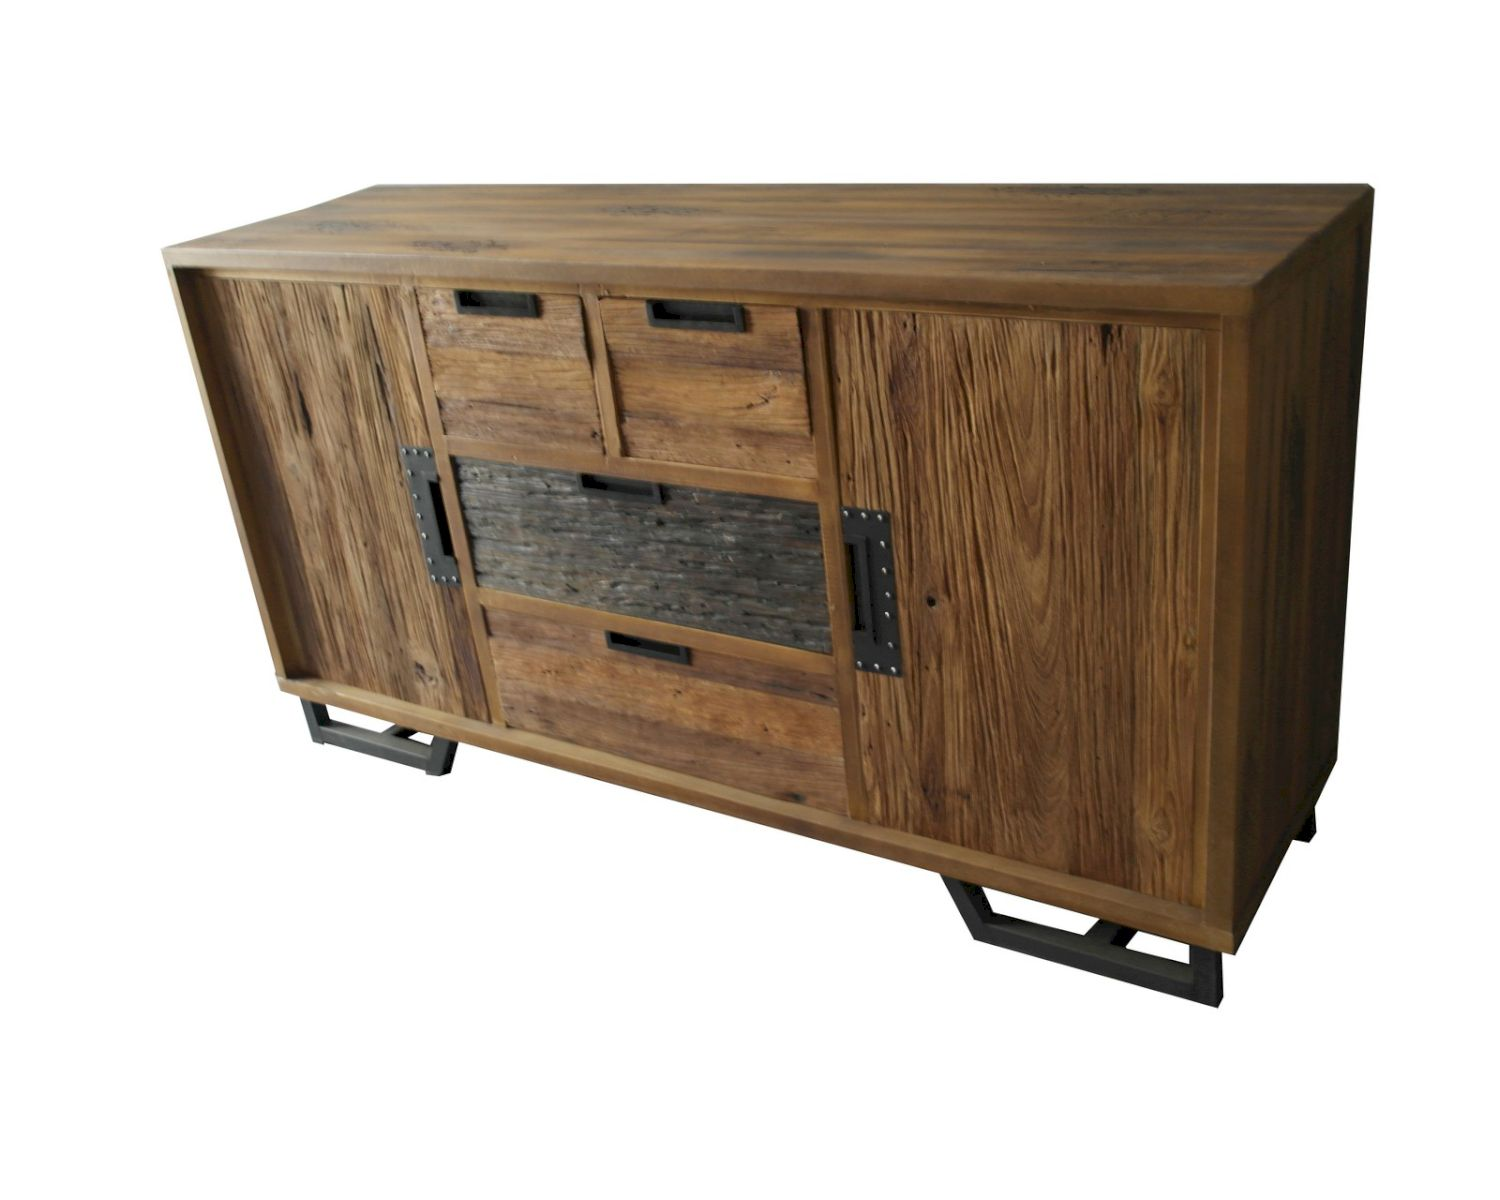 sit thalysa albesia und teak sideboard 4 schubladen 2 t ren. Black Bedroom Furniture Sets. Home Design Ideas